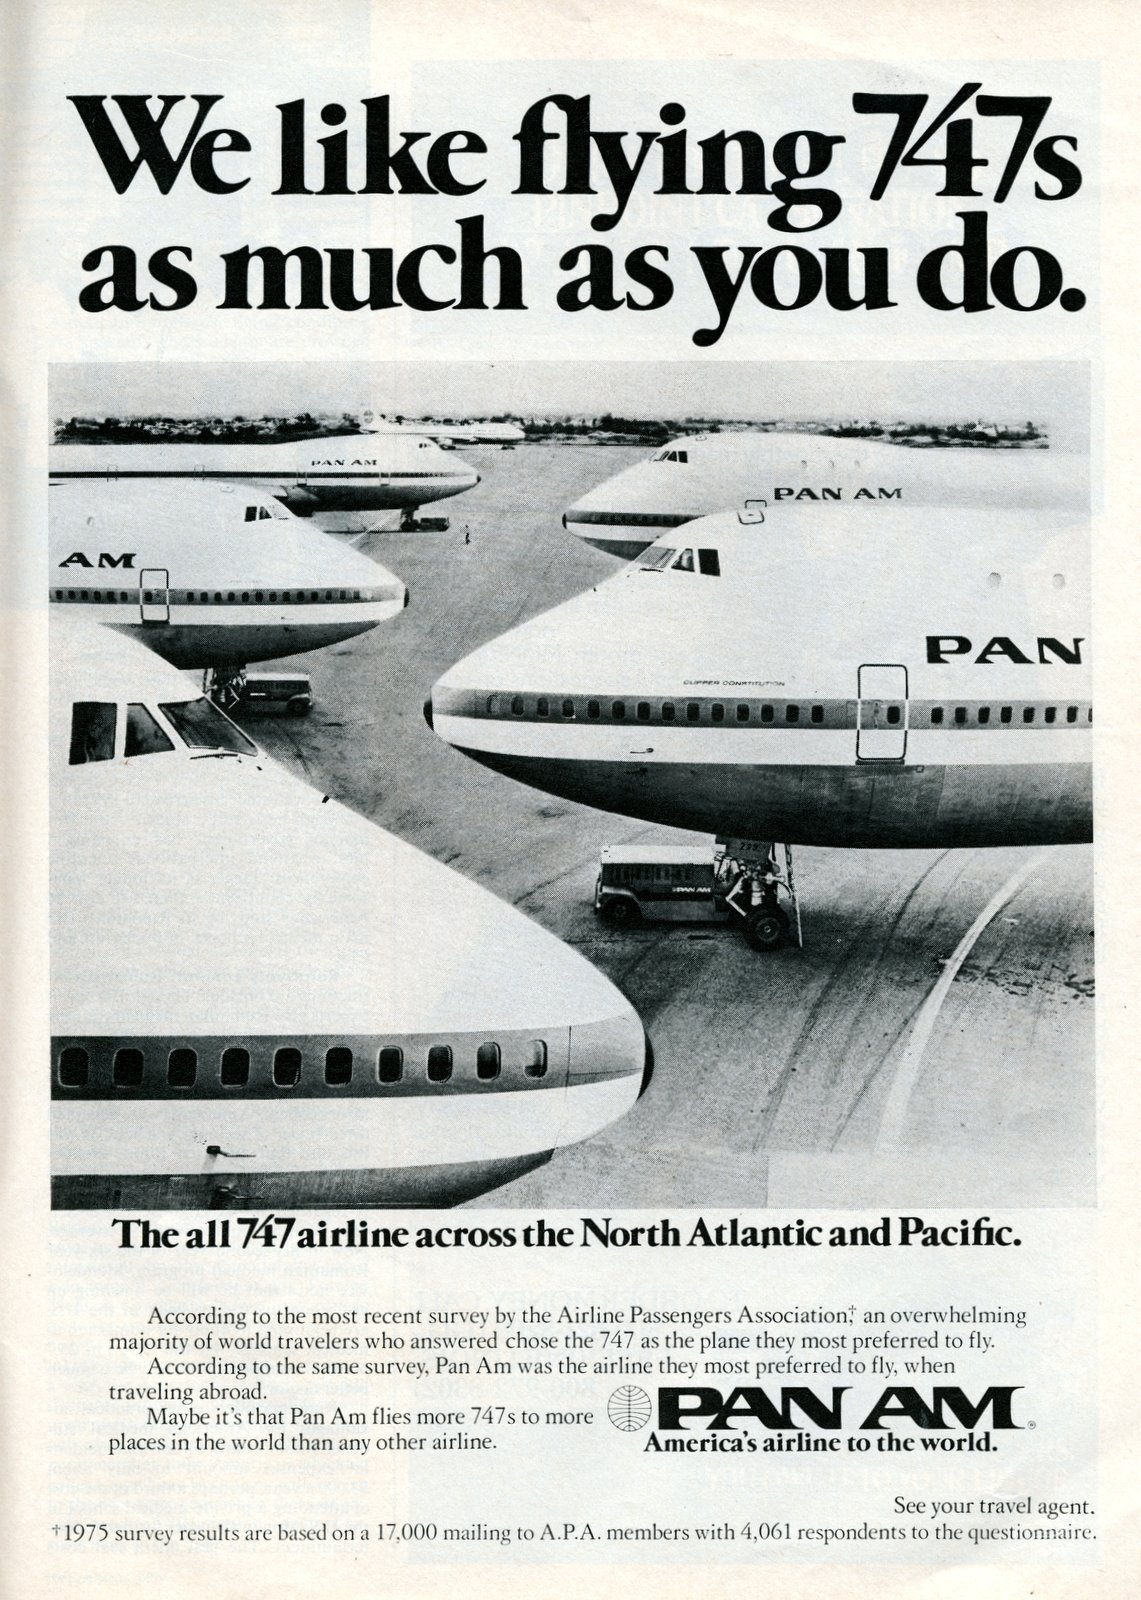 Pan Am's 747 jets (1977)